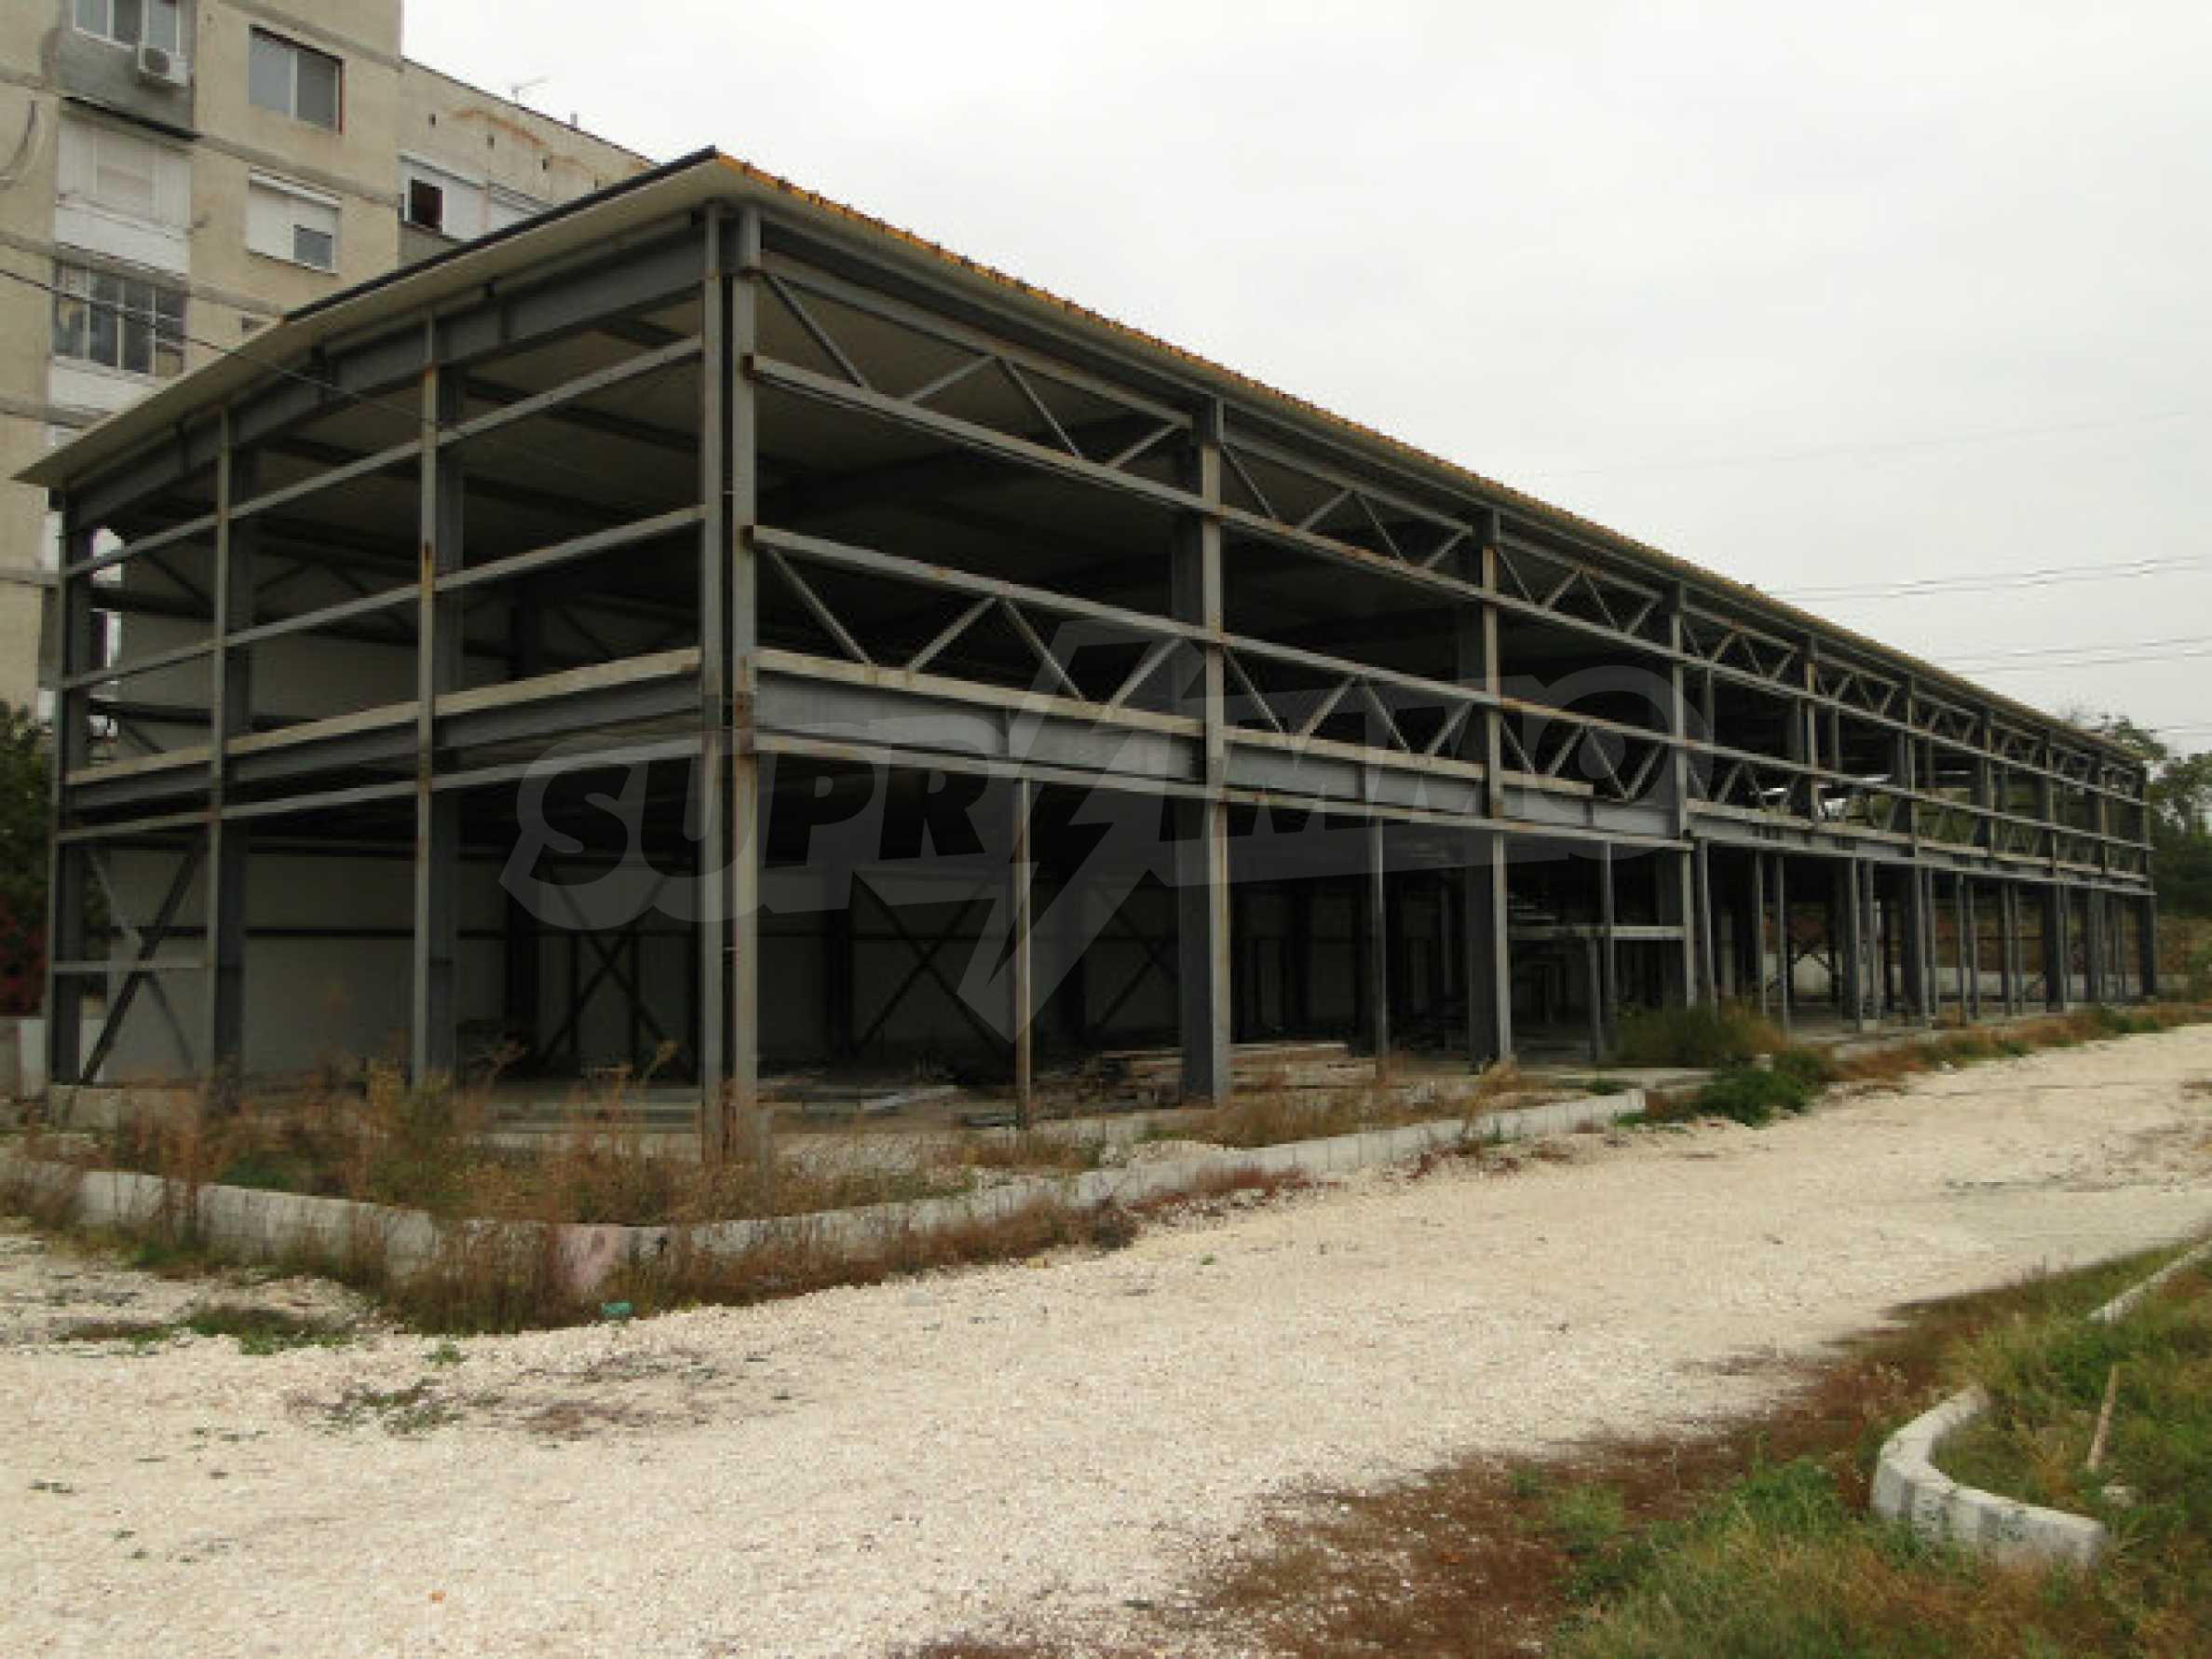 Business property with attractive location 1